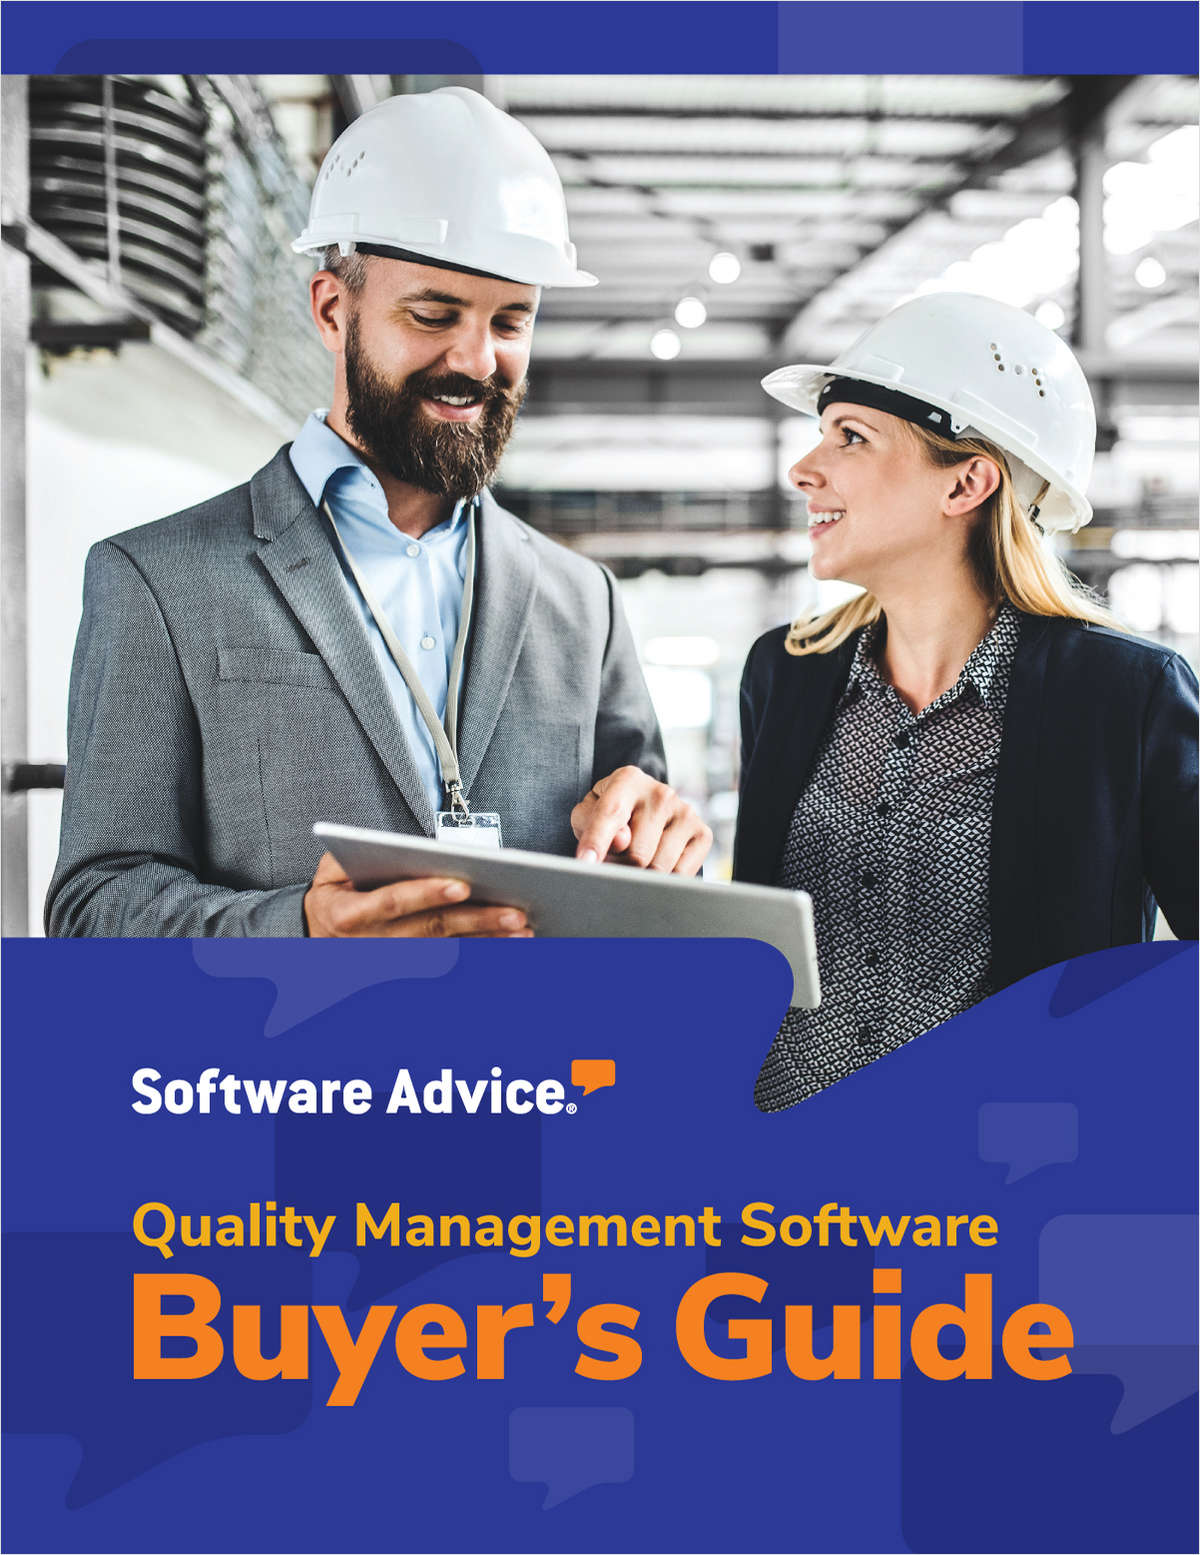 Software Advice's Guide to Buying Quality Management Software in 2019